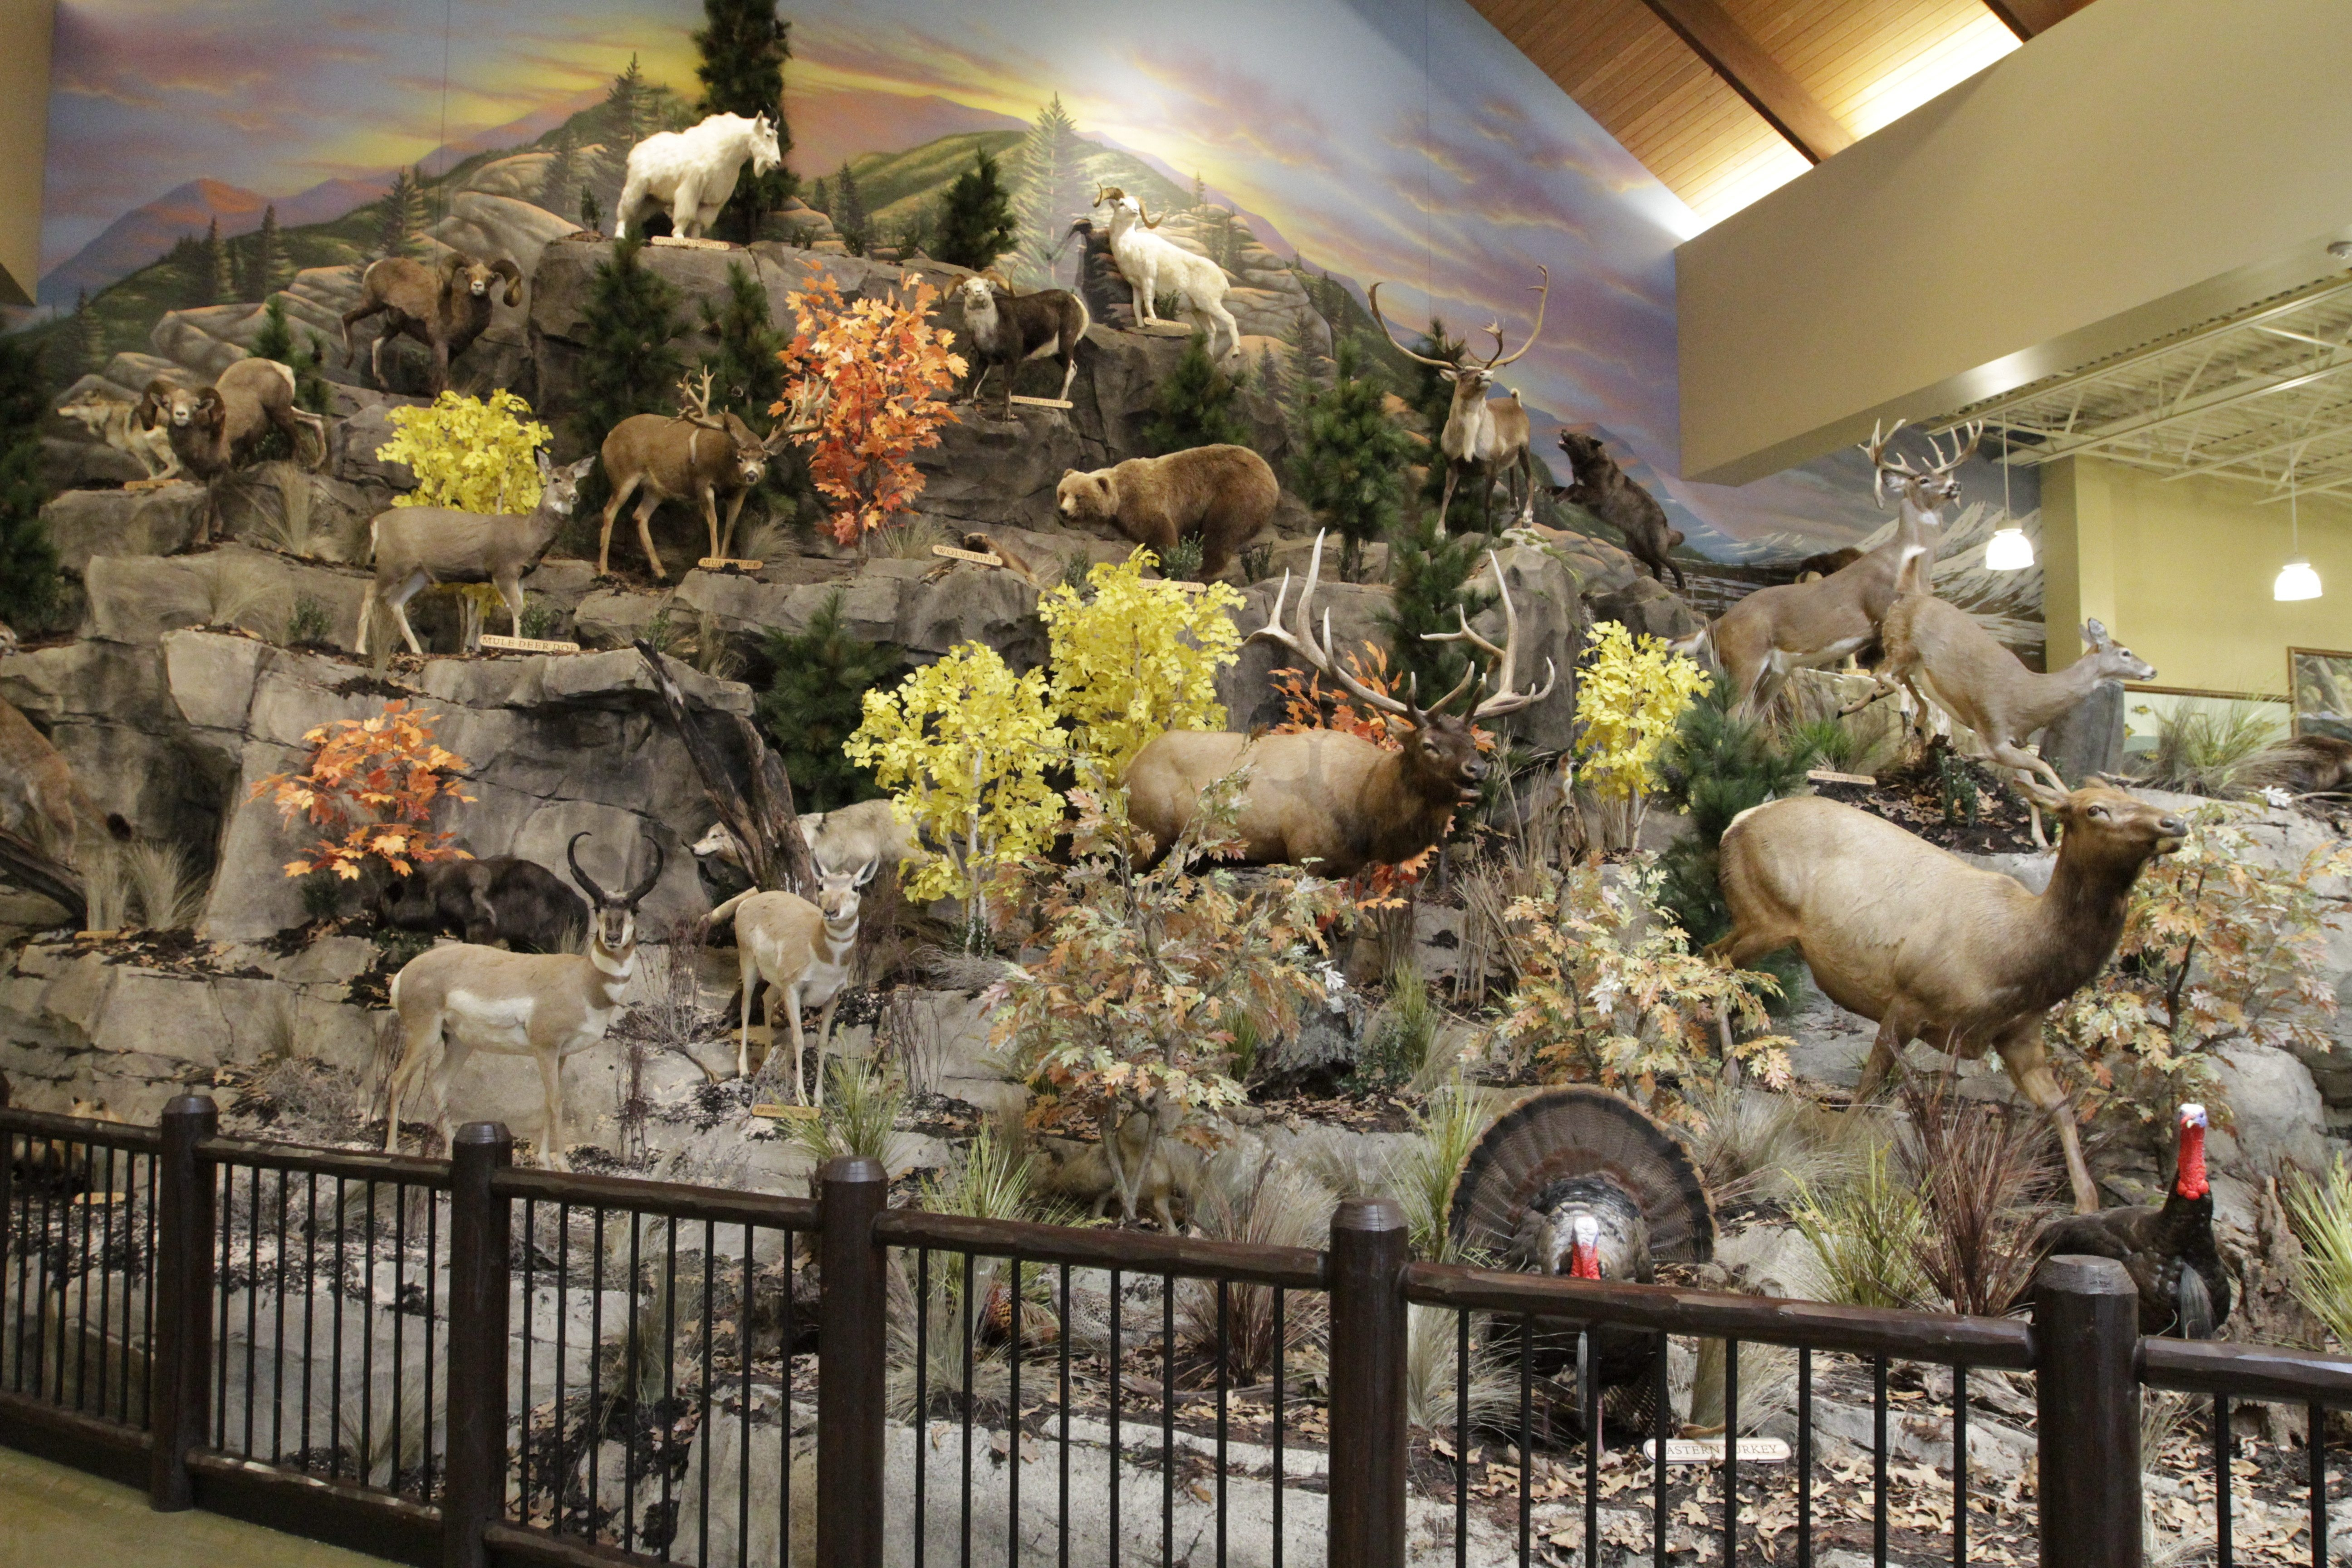 A mountain of wildlife in a taxidermy display on a sneak preview Wednesday of the new Cabela's store.